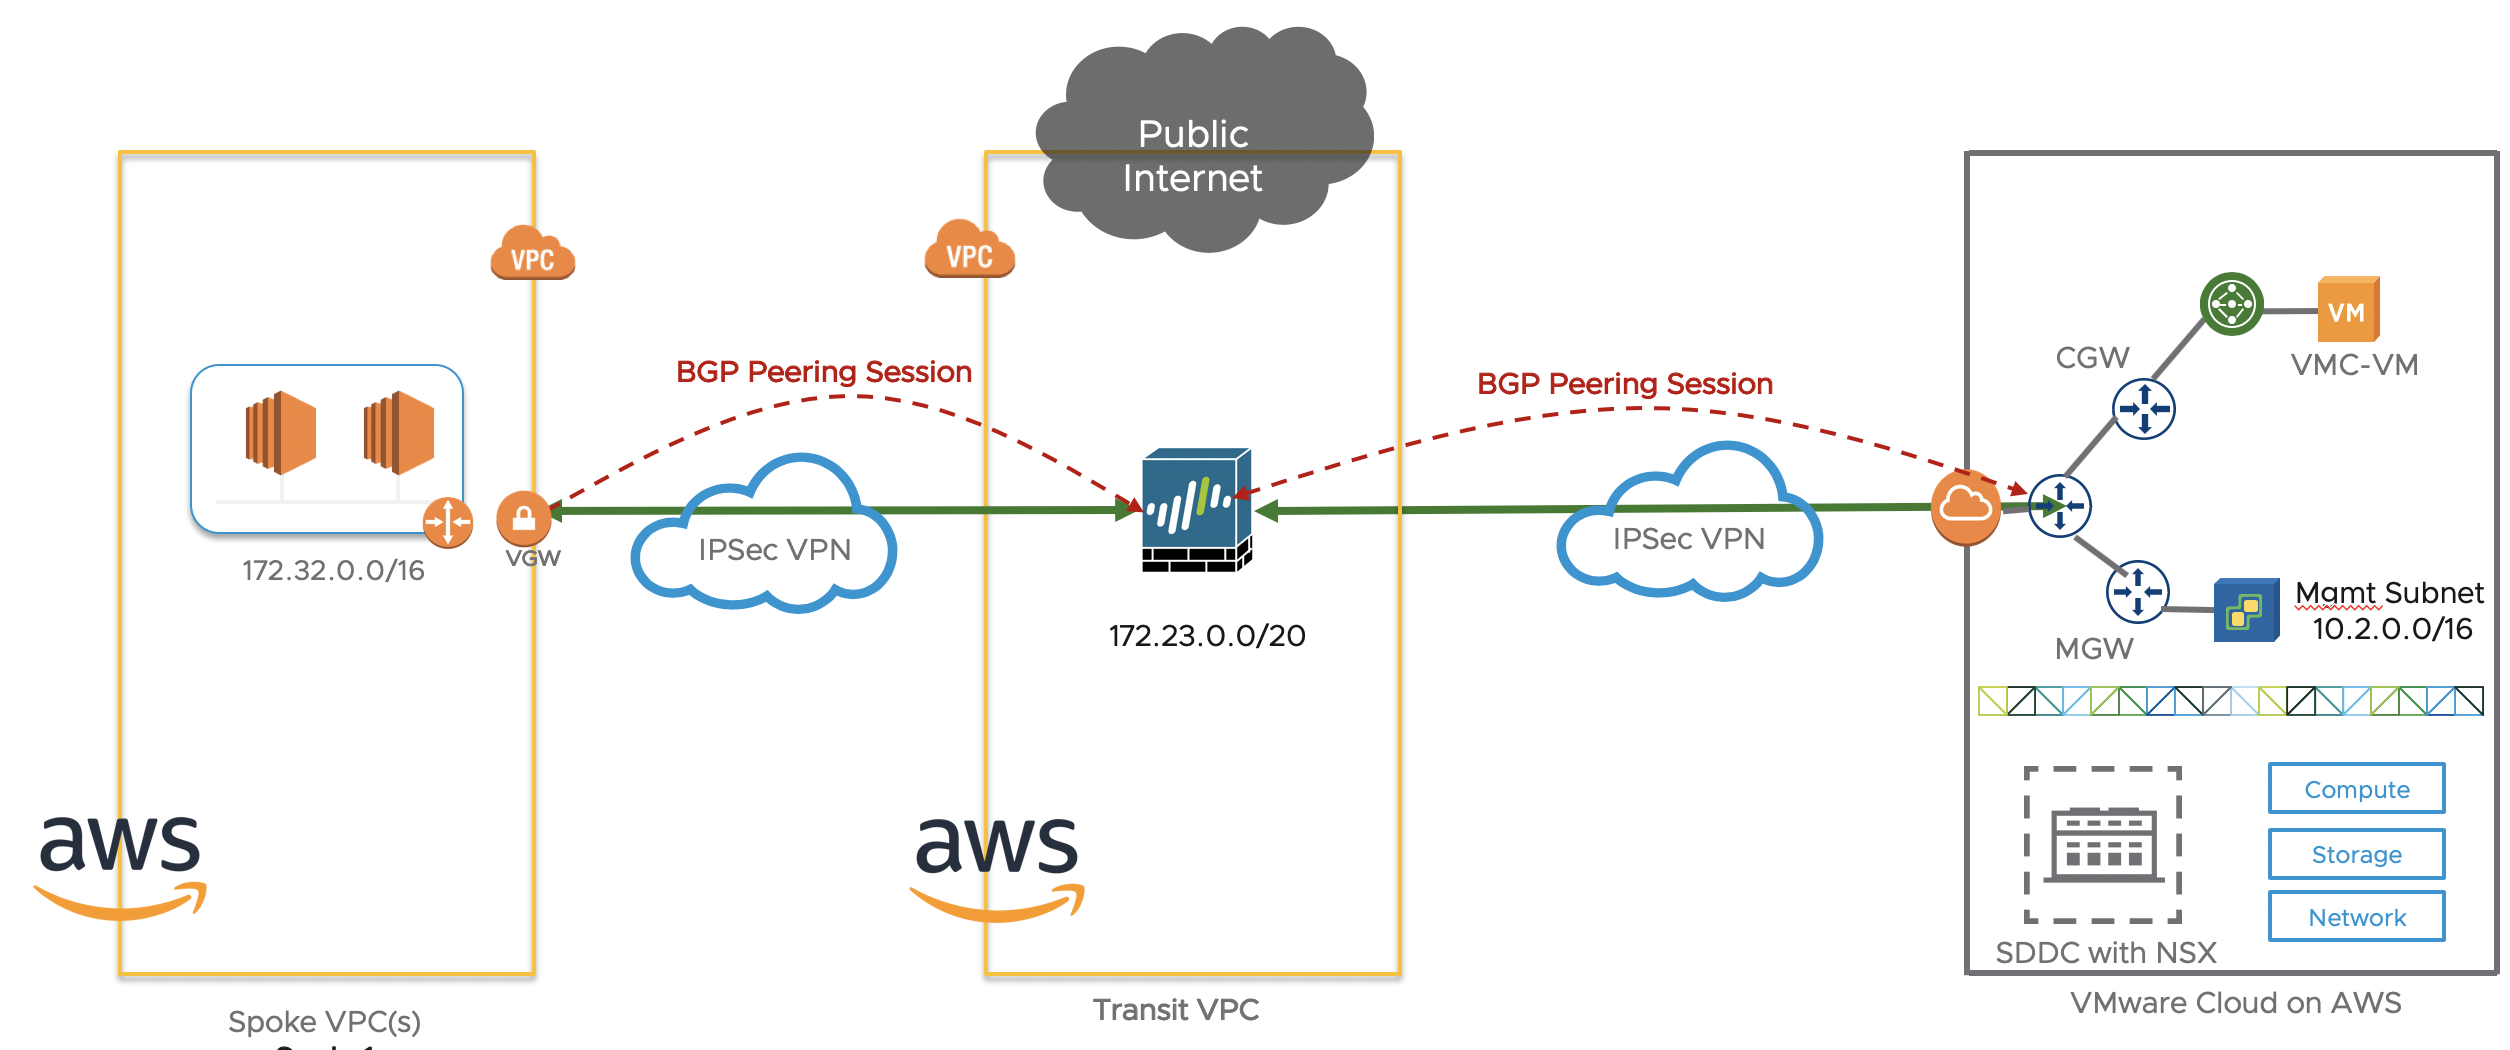 Transit VPC with Palo Alto Networks firewall and VMware Cloud on AWS